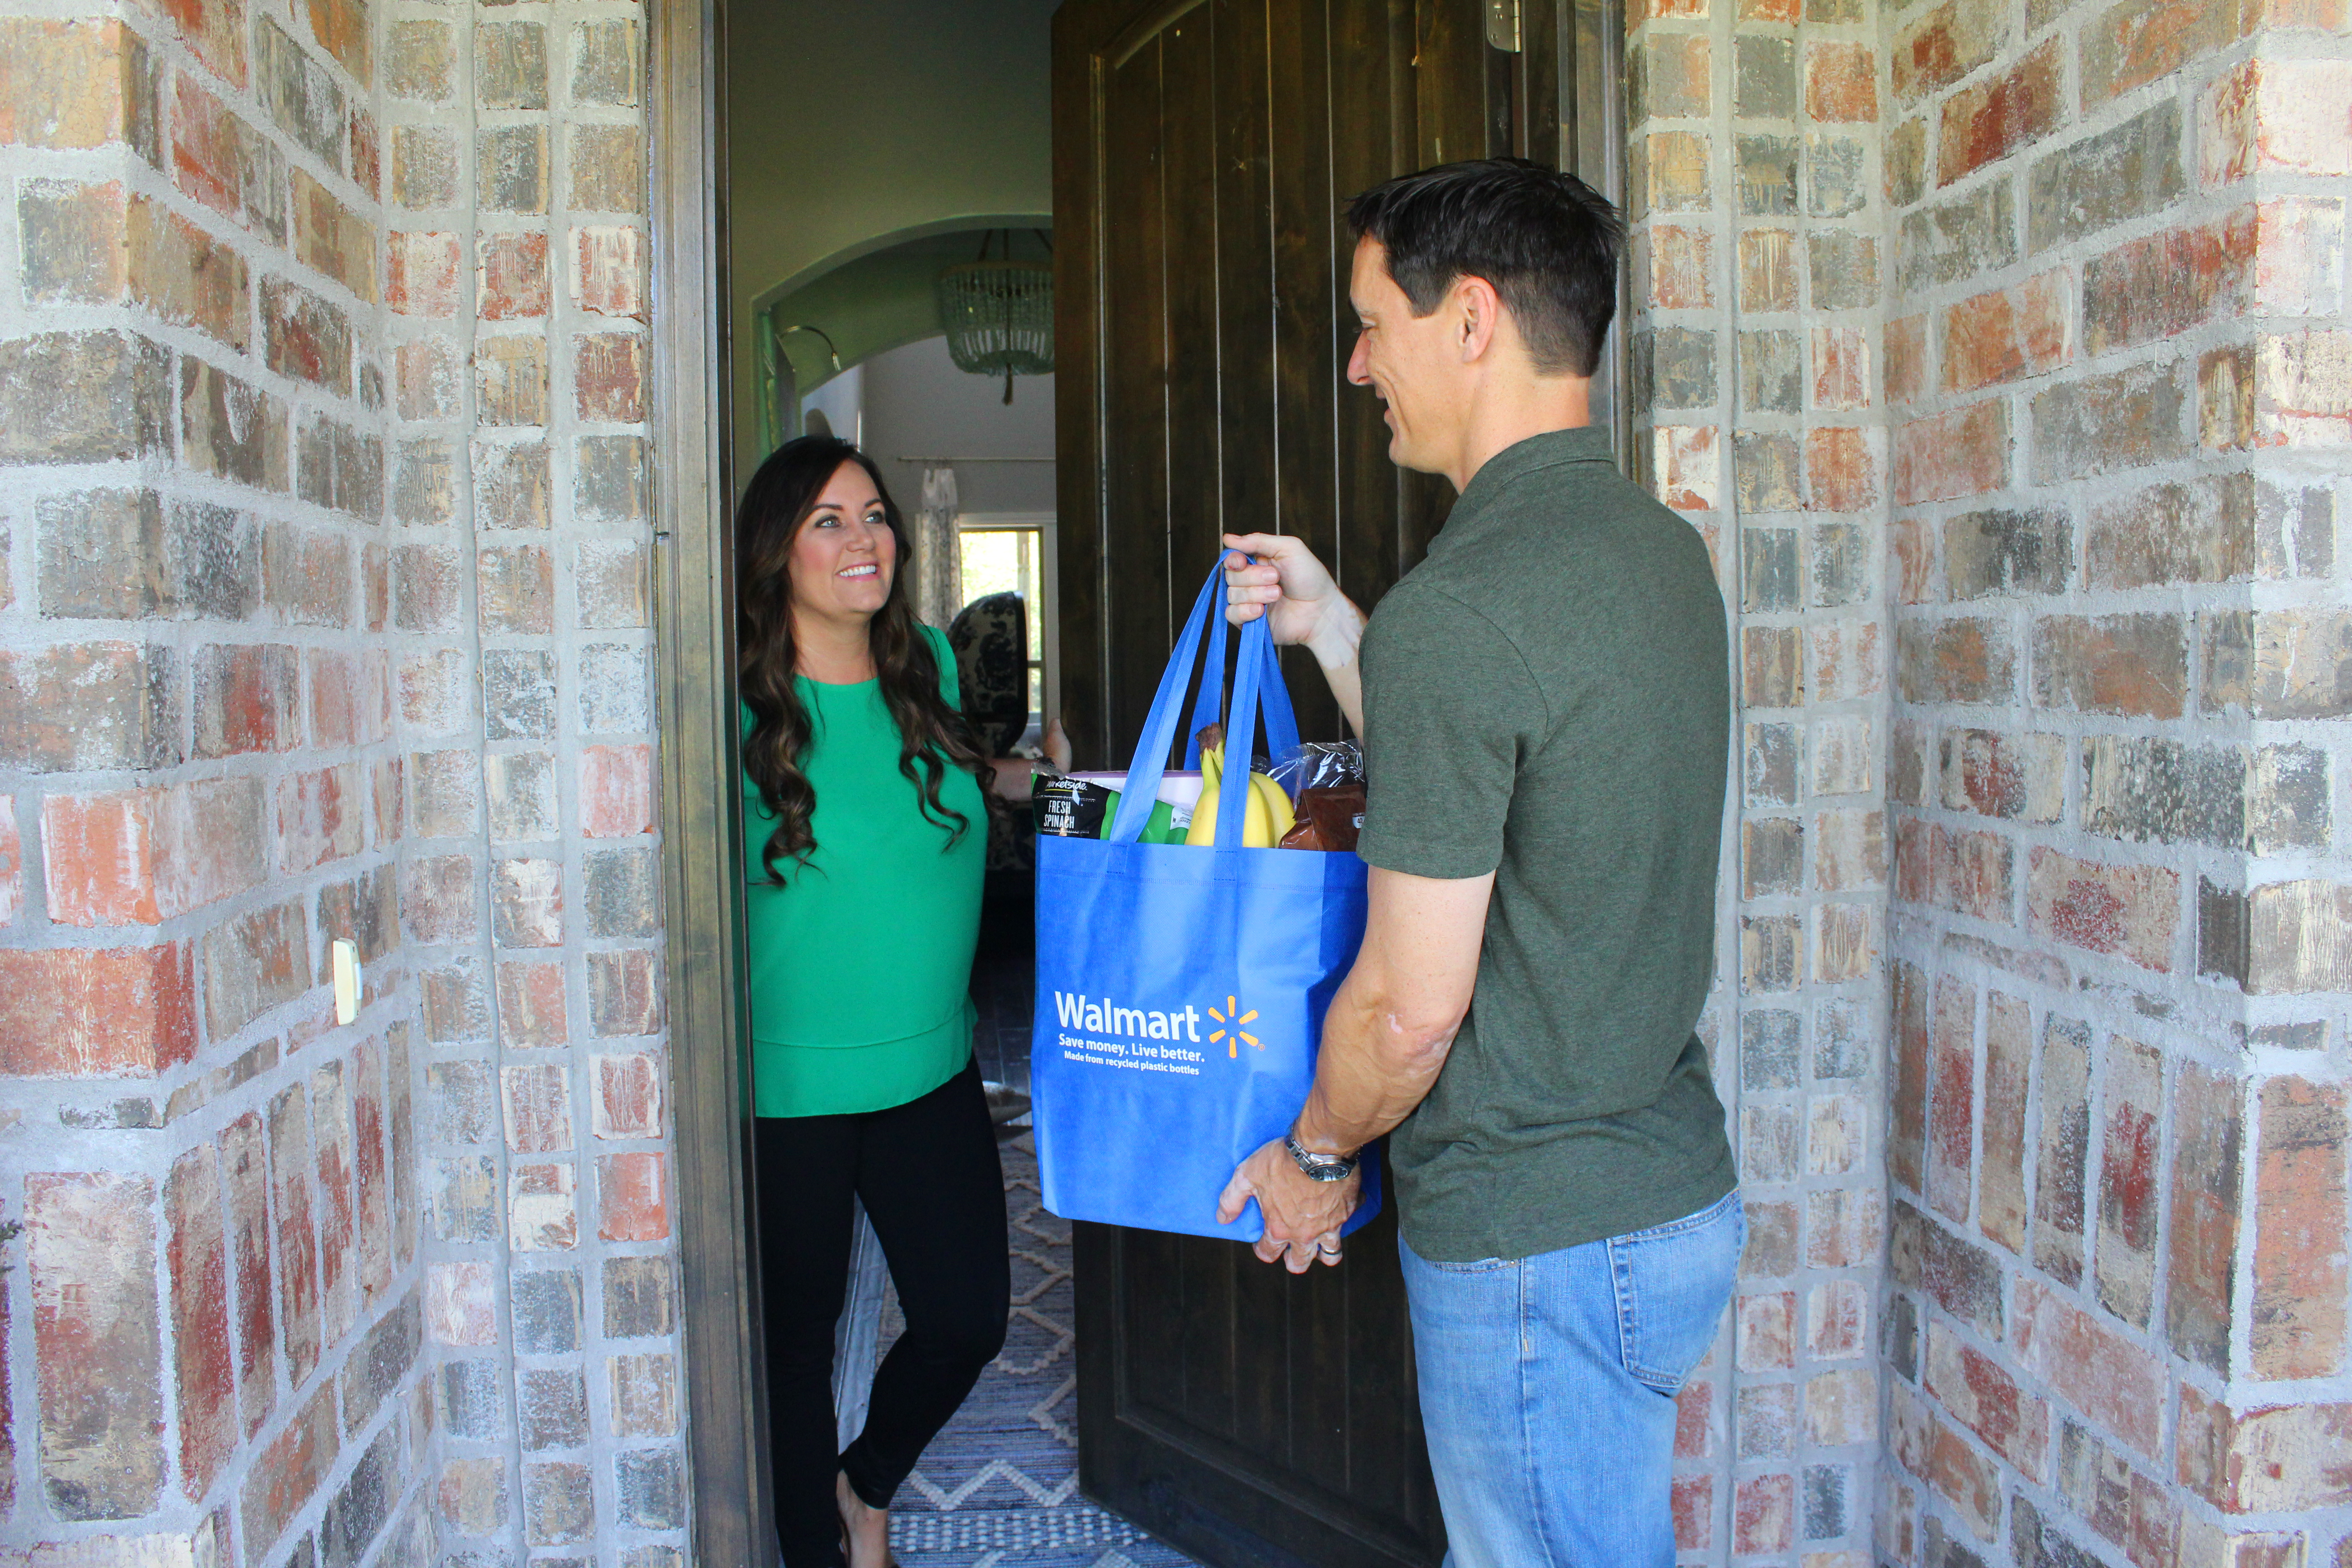 A driver delivers a Walmart Grocery Delivery order